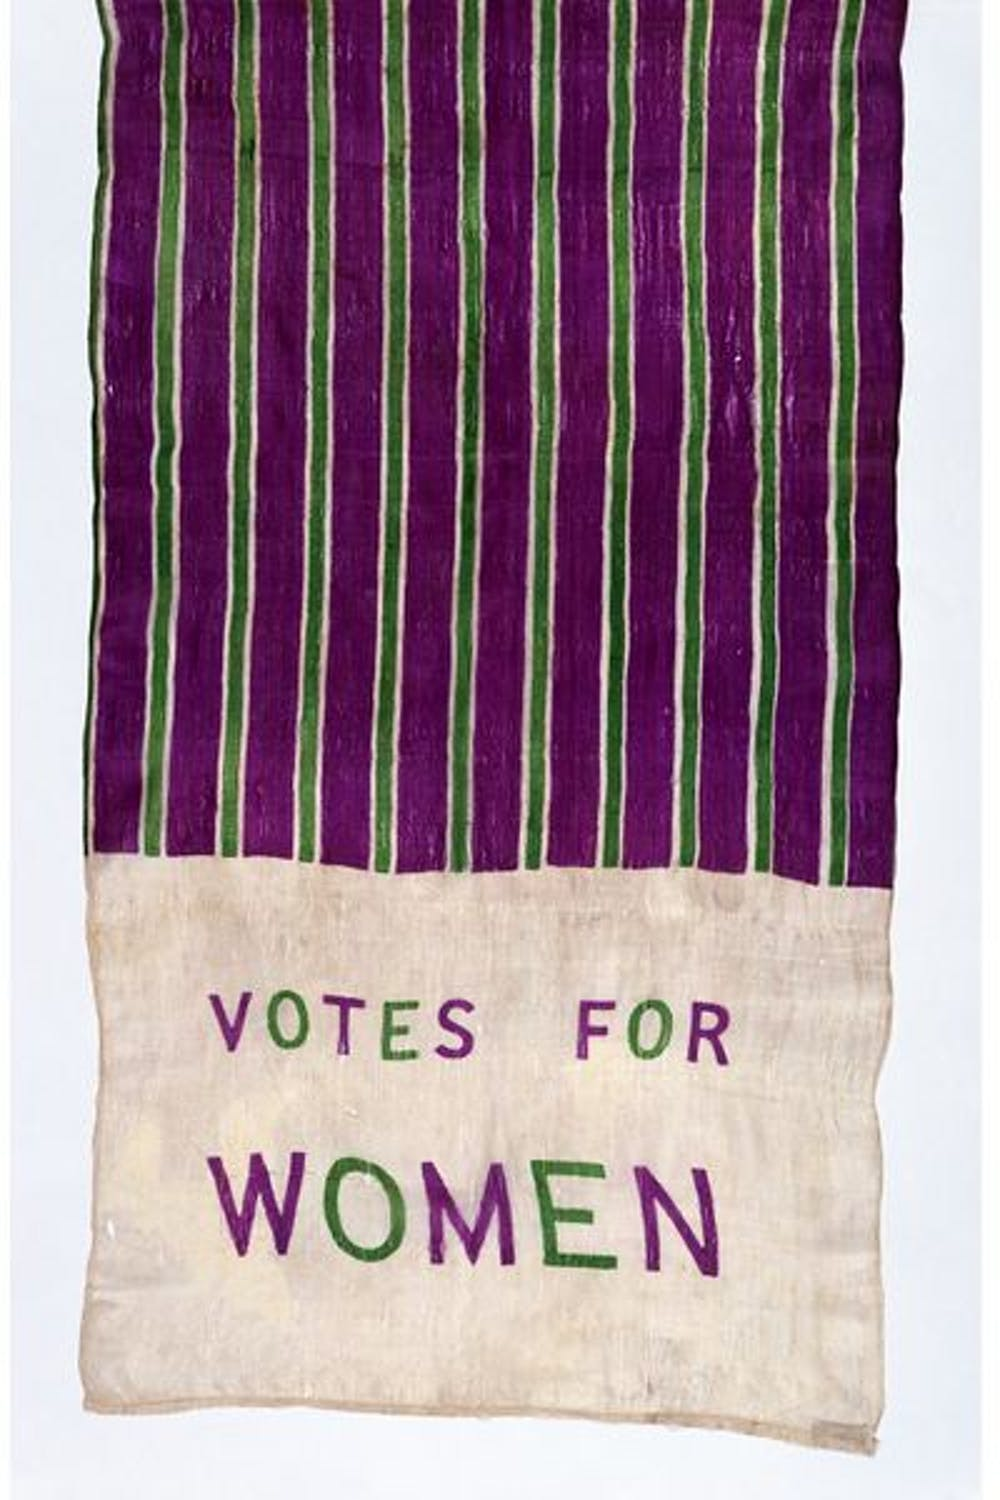 4b6070d9b5a Votes for Women  the scarf as a political statement. © Victoria and Albert  Museum